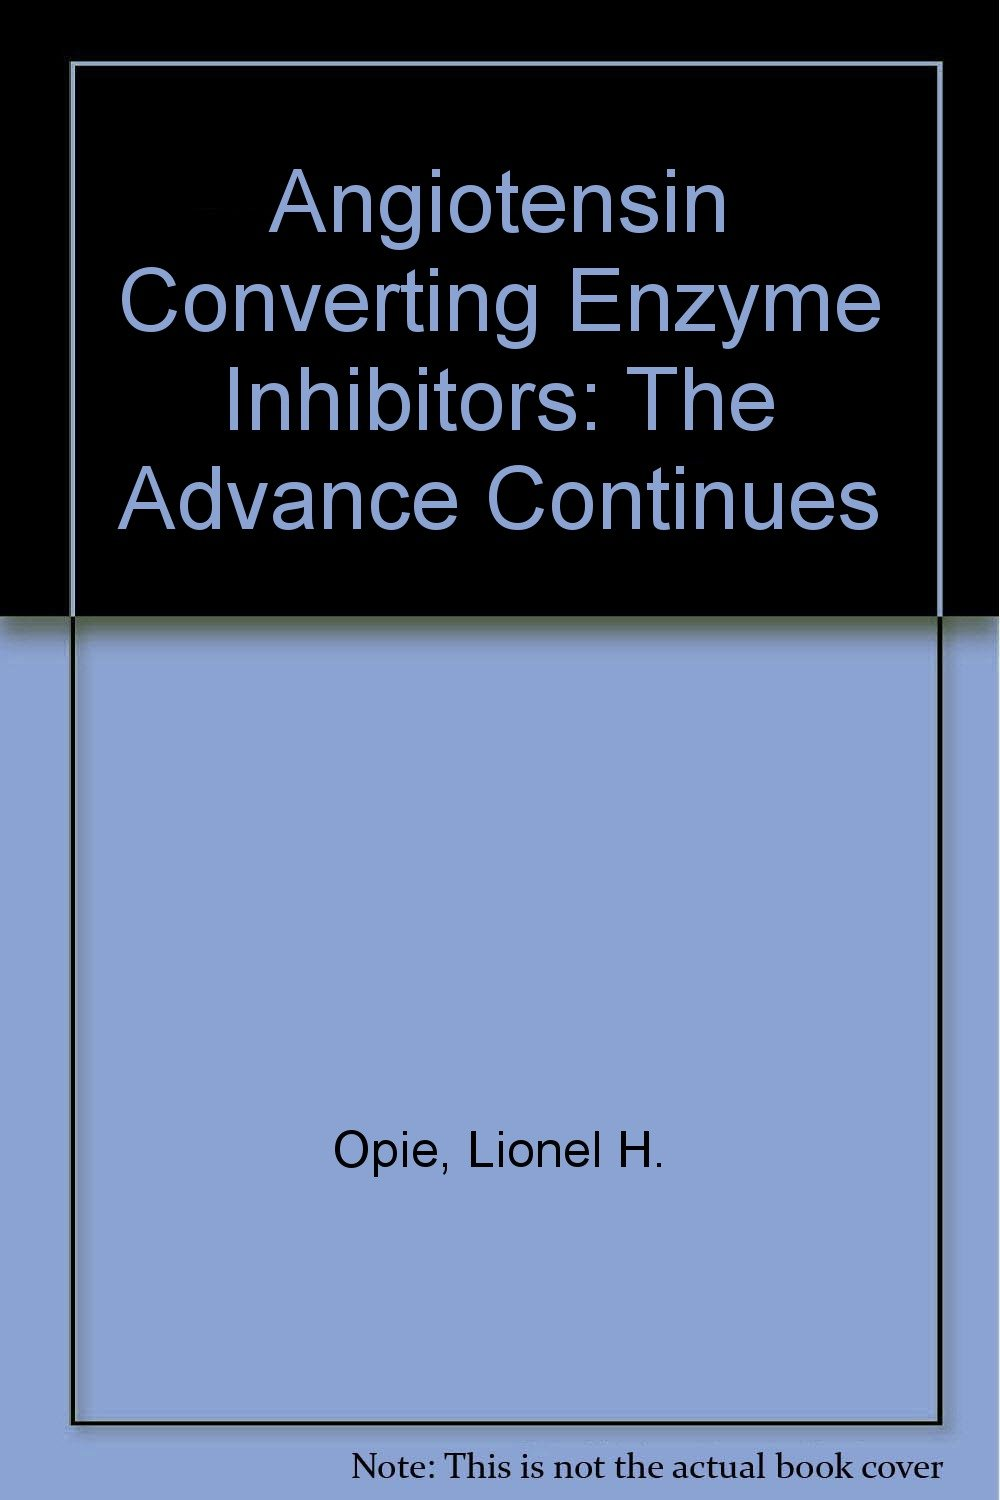 Angiotensin Converting Enzyme Inhibitors: The Advance